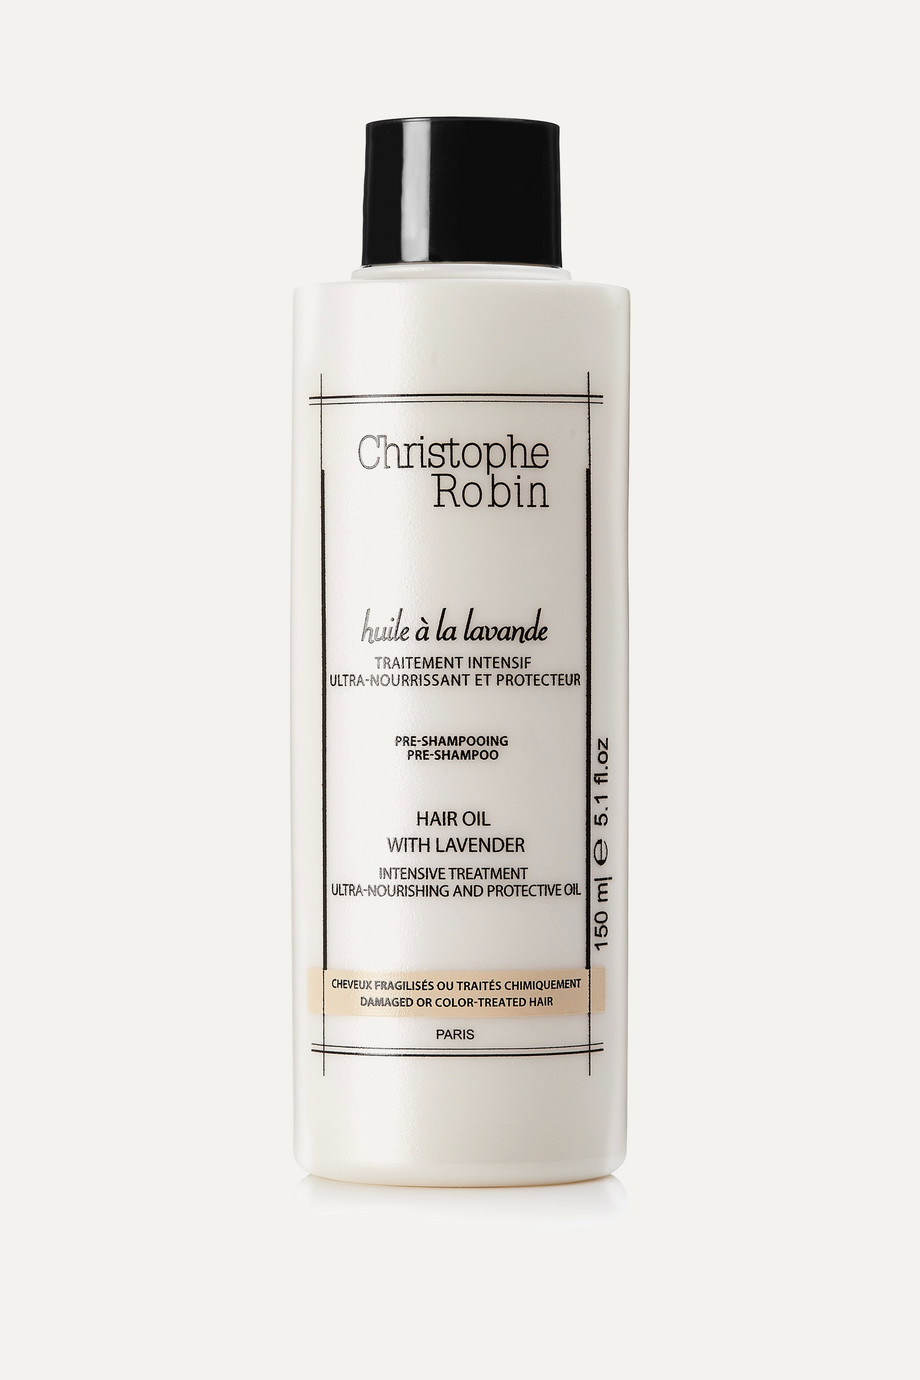 Moisturizing Hair Oil With Lavender, 150ml, by Christophe Robin